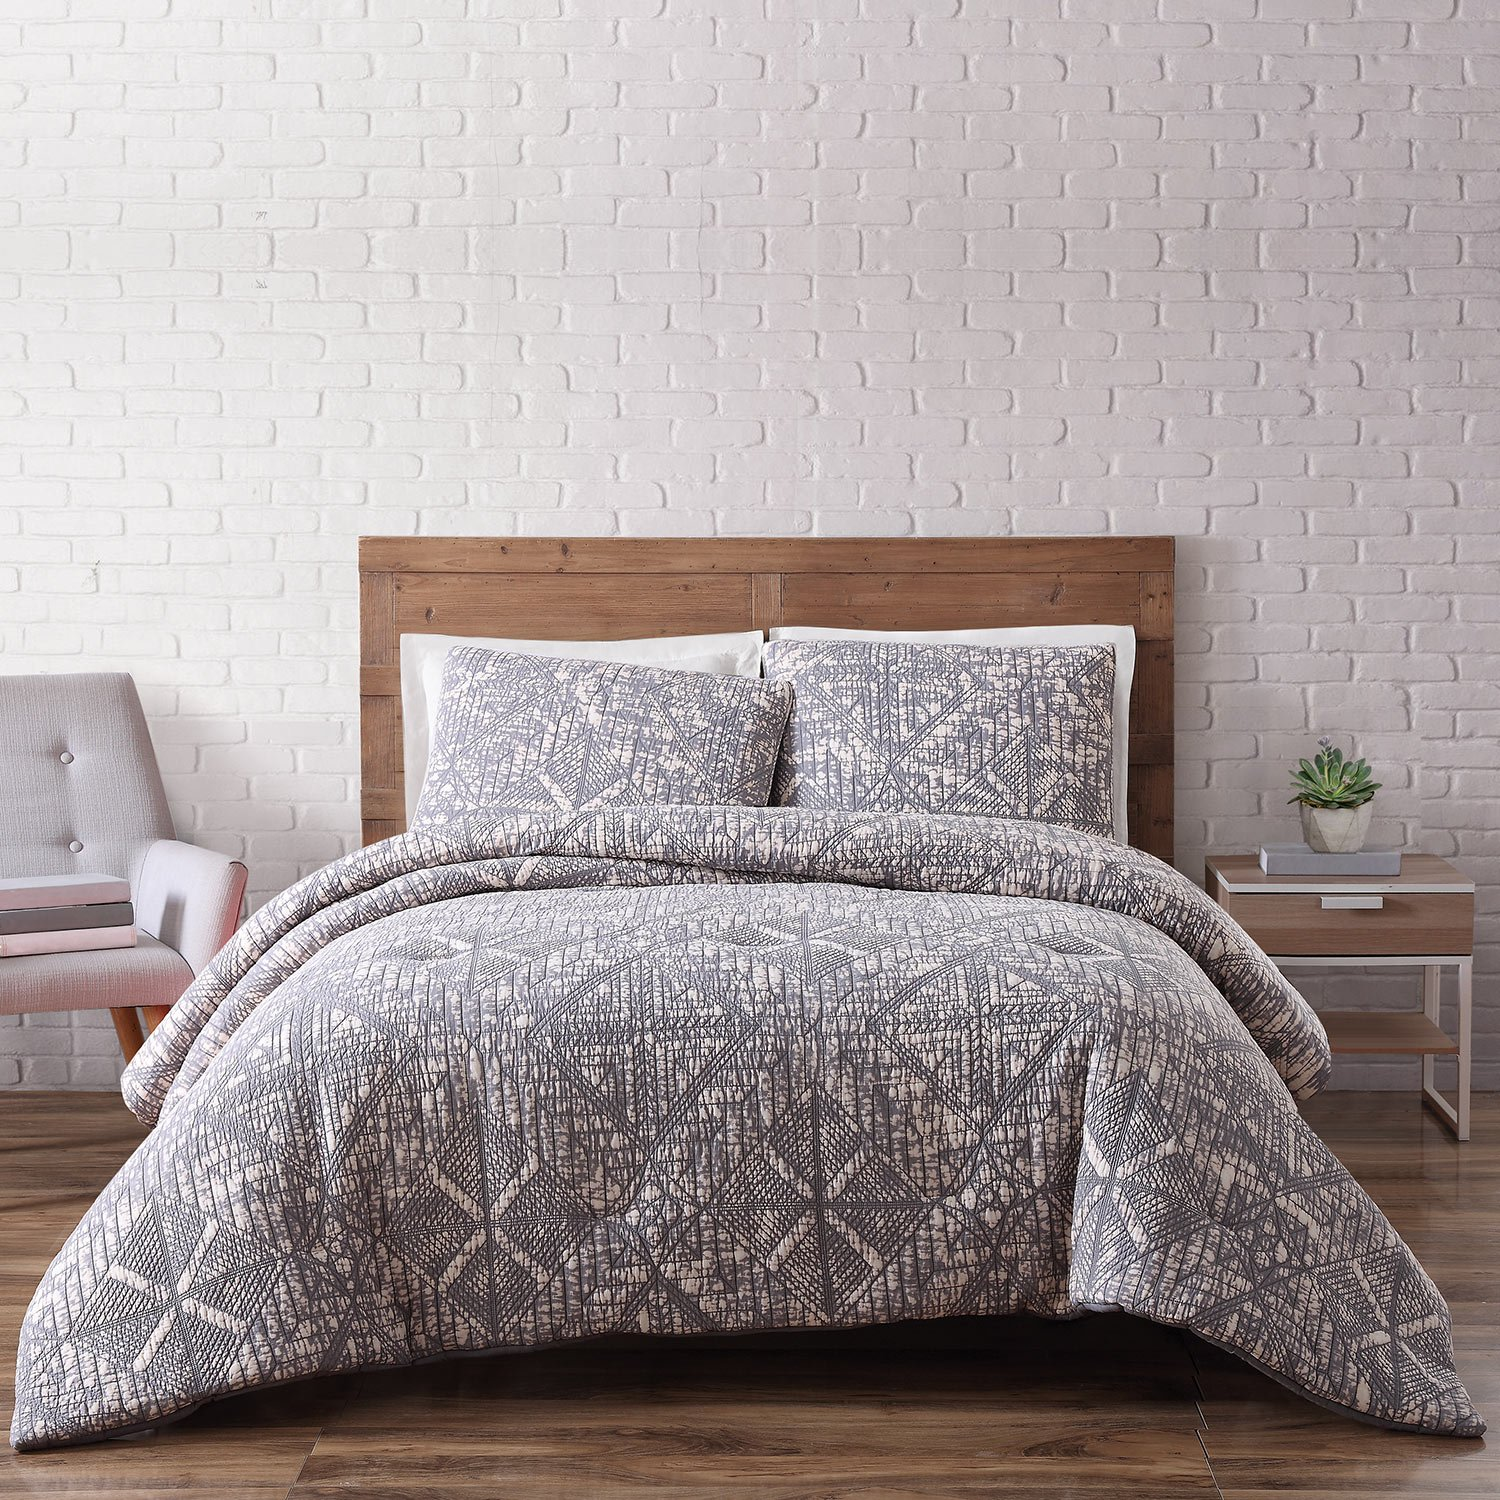 Brooklyn Loom Sand Washed Cotton Comforter Set, Full/Queen, Gray